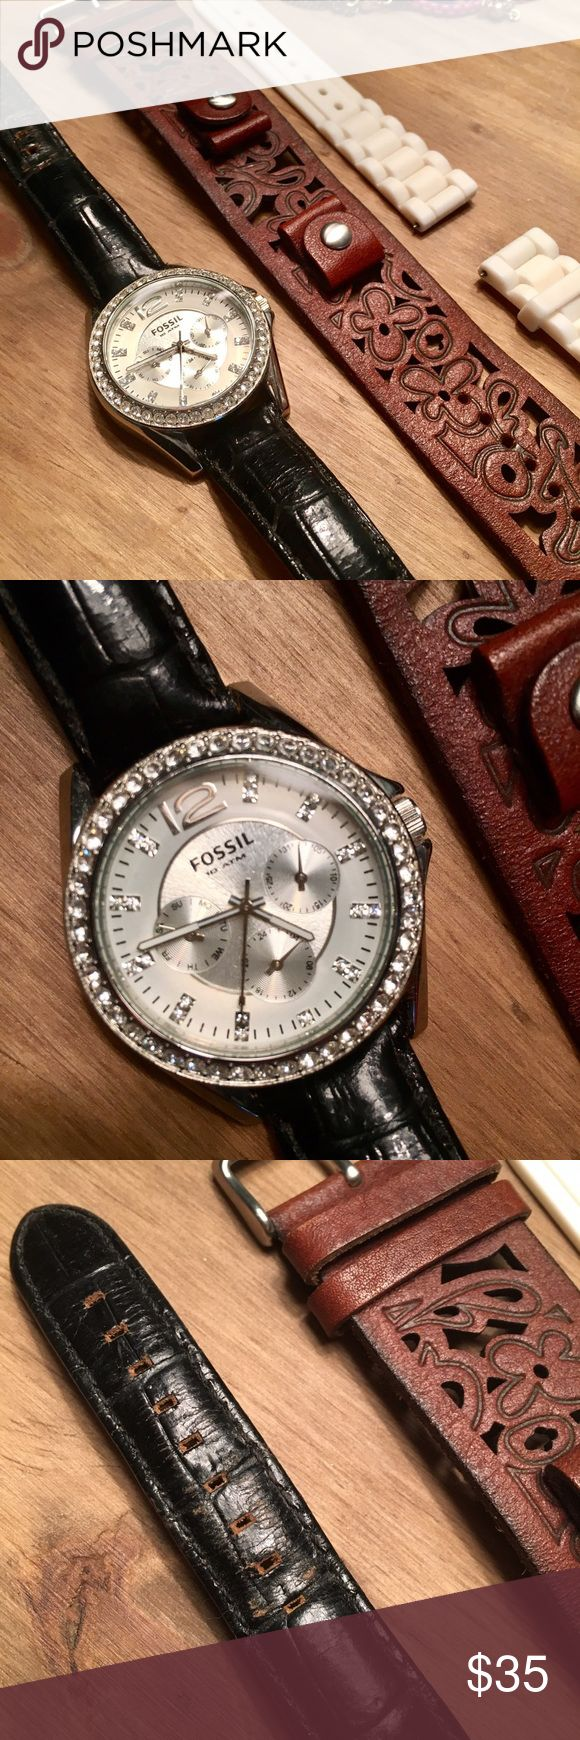 🍾 SALE 🍾 Fosil Watch with Three Bands Fossil watch, includes all three bands. Normal wear and tear, see photos. Needs a new battery. Fossil Accessories Watches